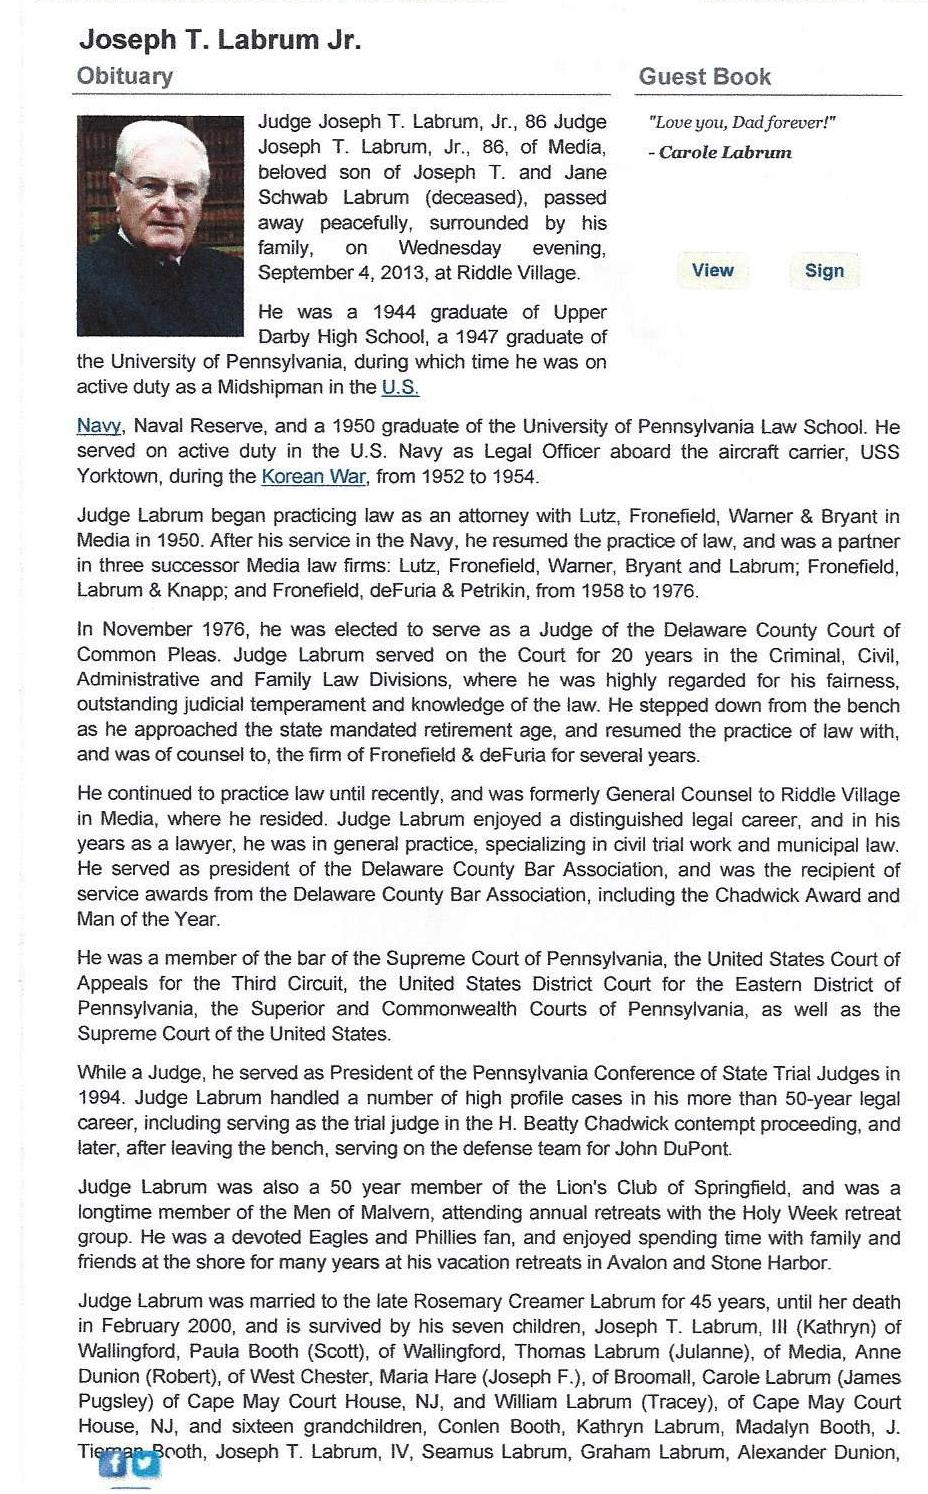 314th Infantry - Judge Joseph T Labrum - Obituary Page 1